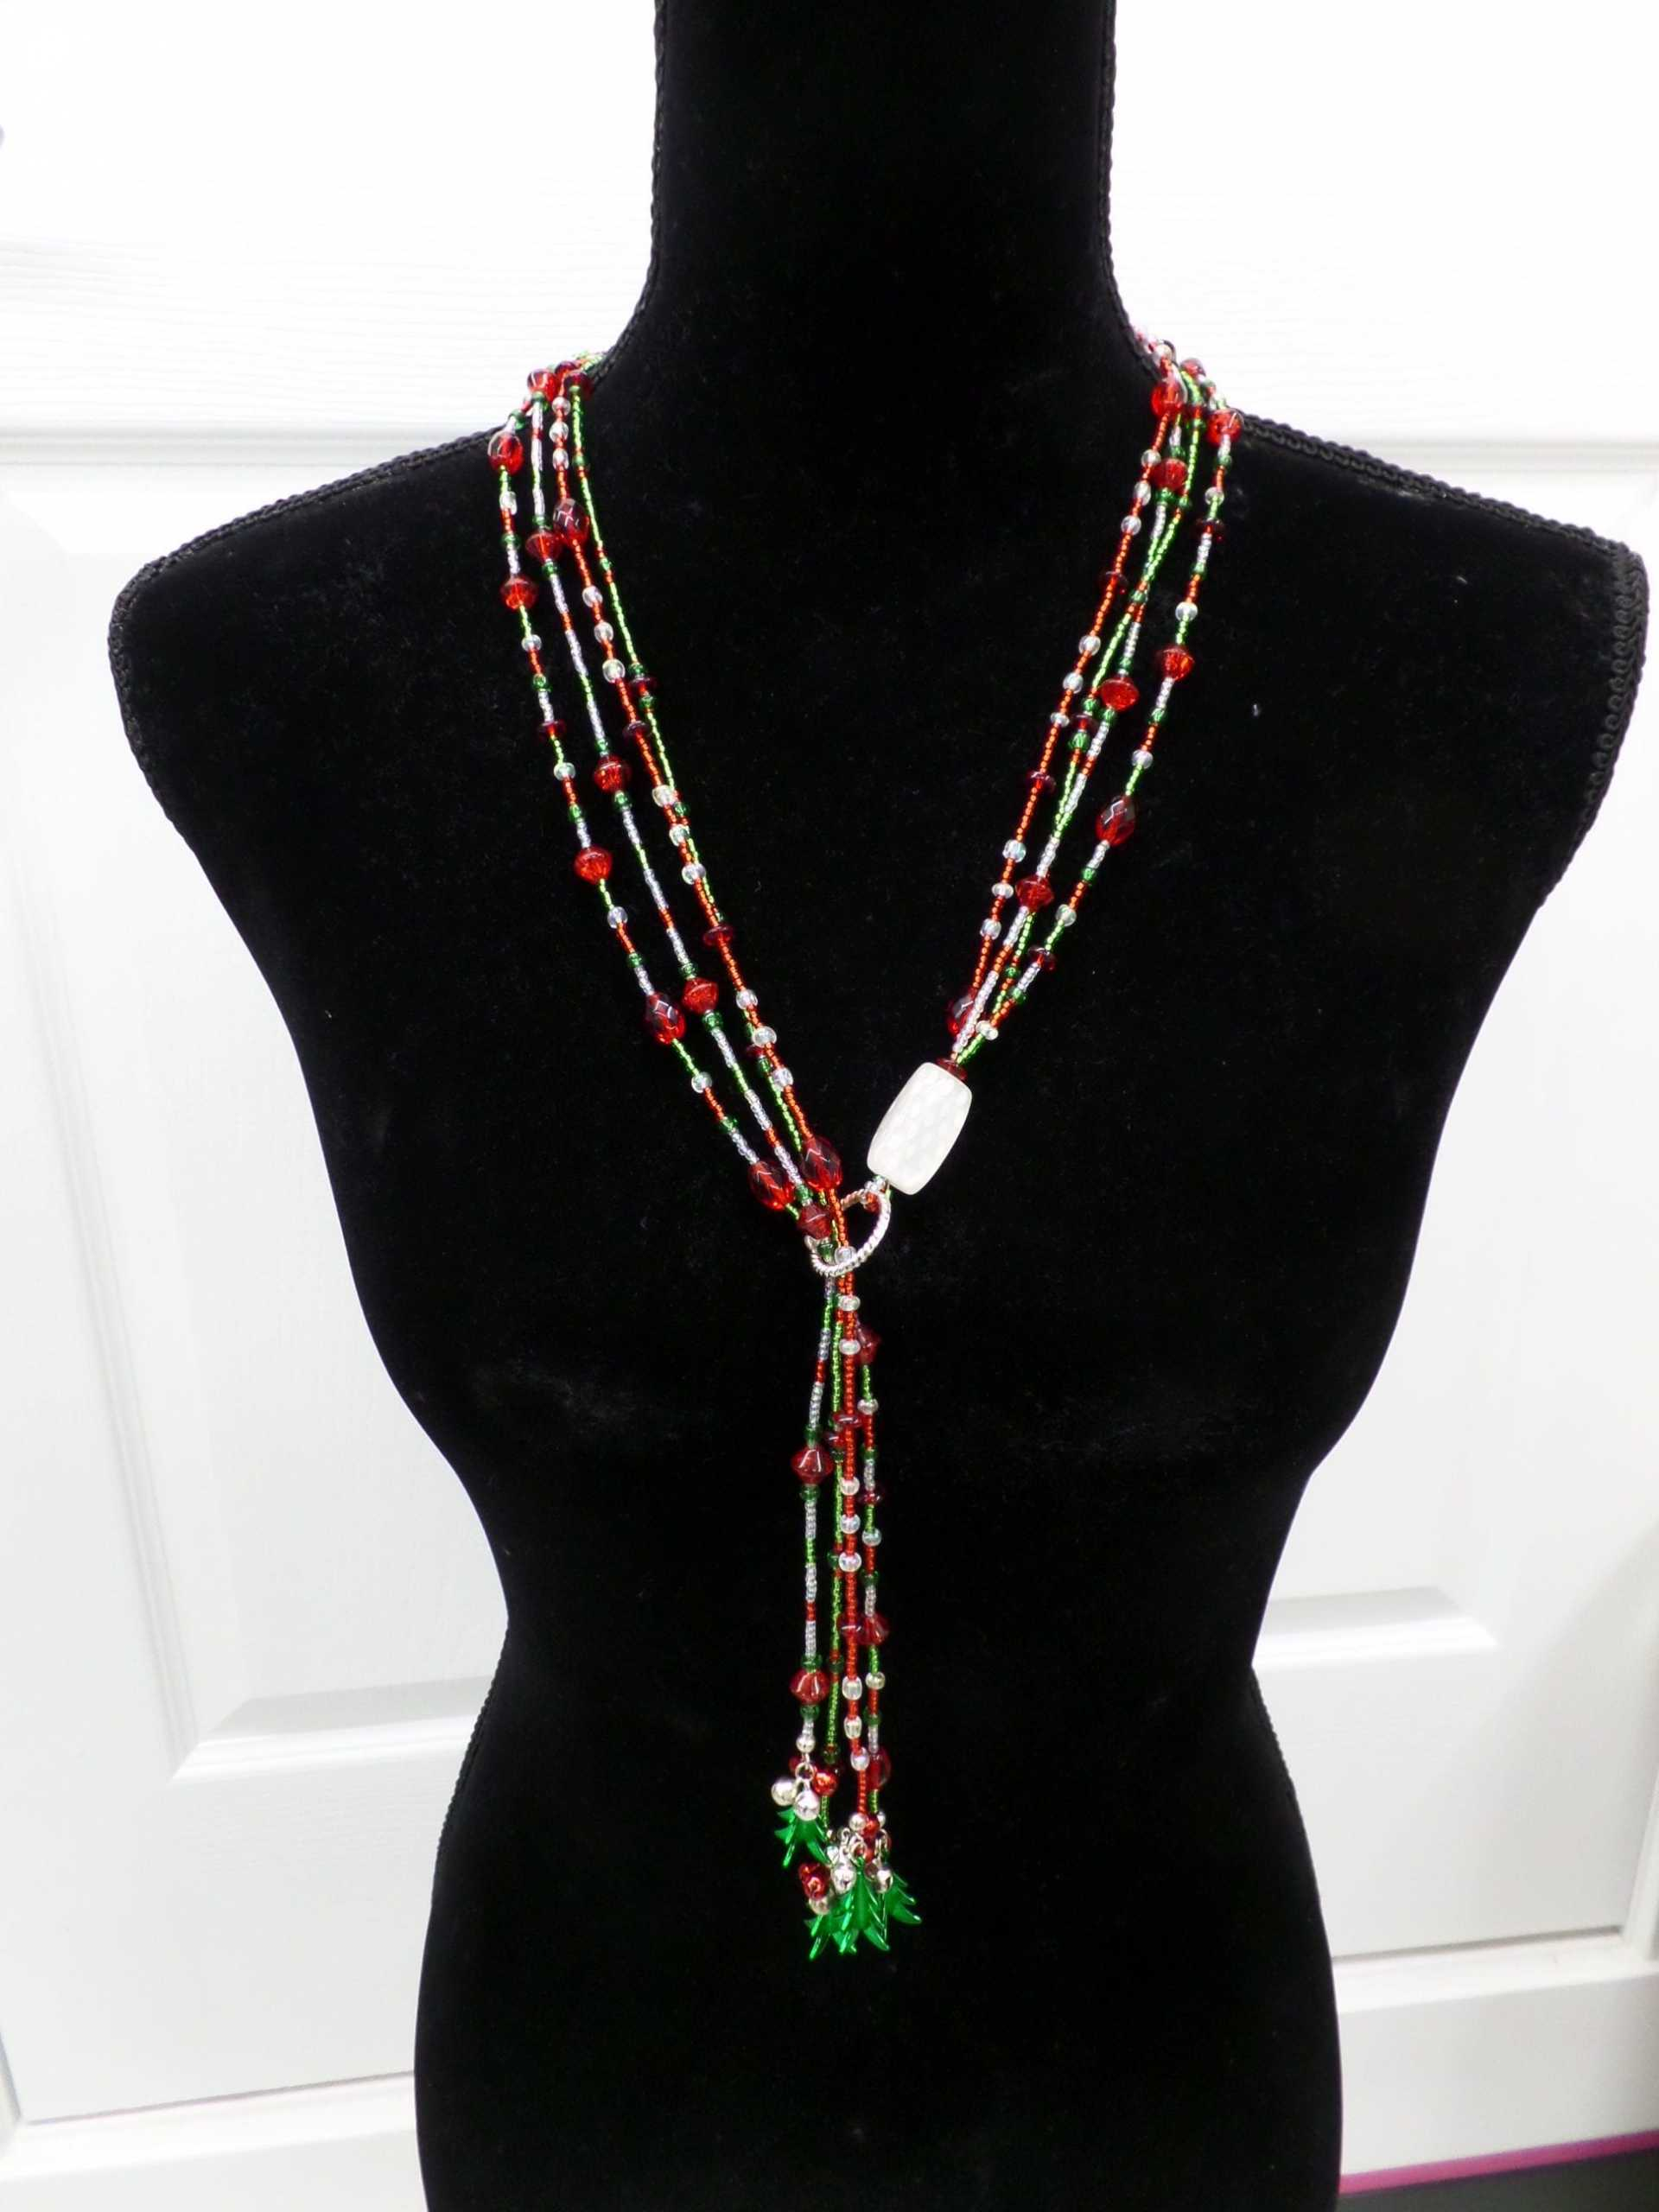 HOLIDAY JEWELRY SET <br/> Donated by: TWO SOULS JEWELRY <br/> Valued at: $50